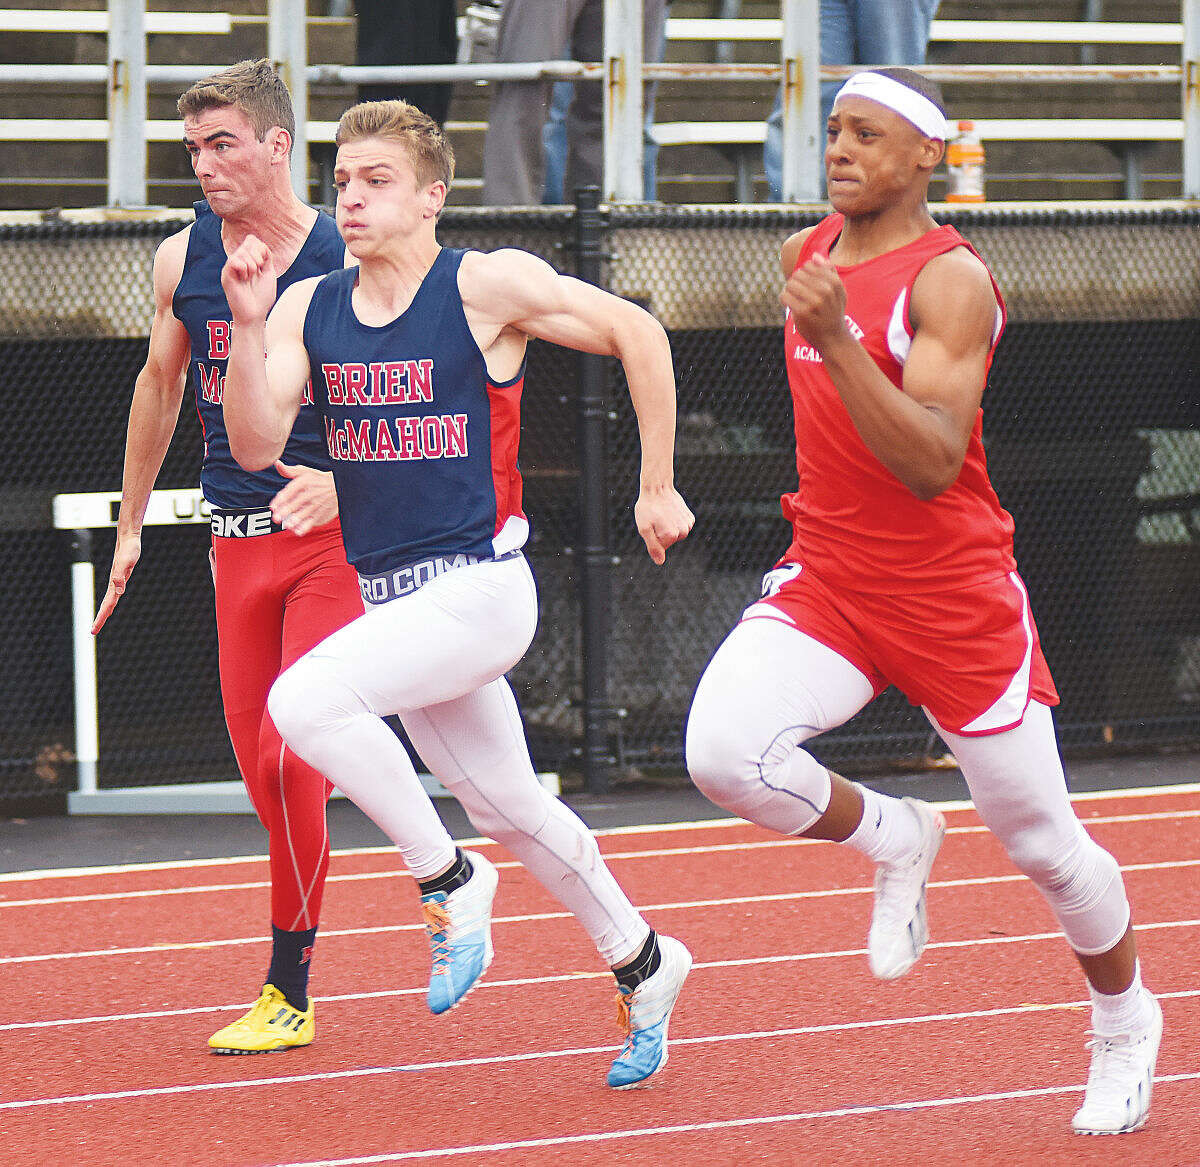 Hour photo/John Nash - McMahon's Niko Petridis, center, and Daniel Linehan, left, competes in the boys 100-meter dash finals against Norwich Free Academy's Jawaun Johnson, right.